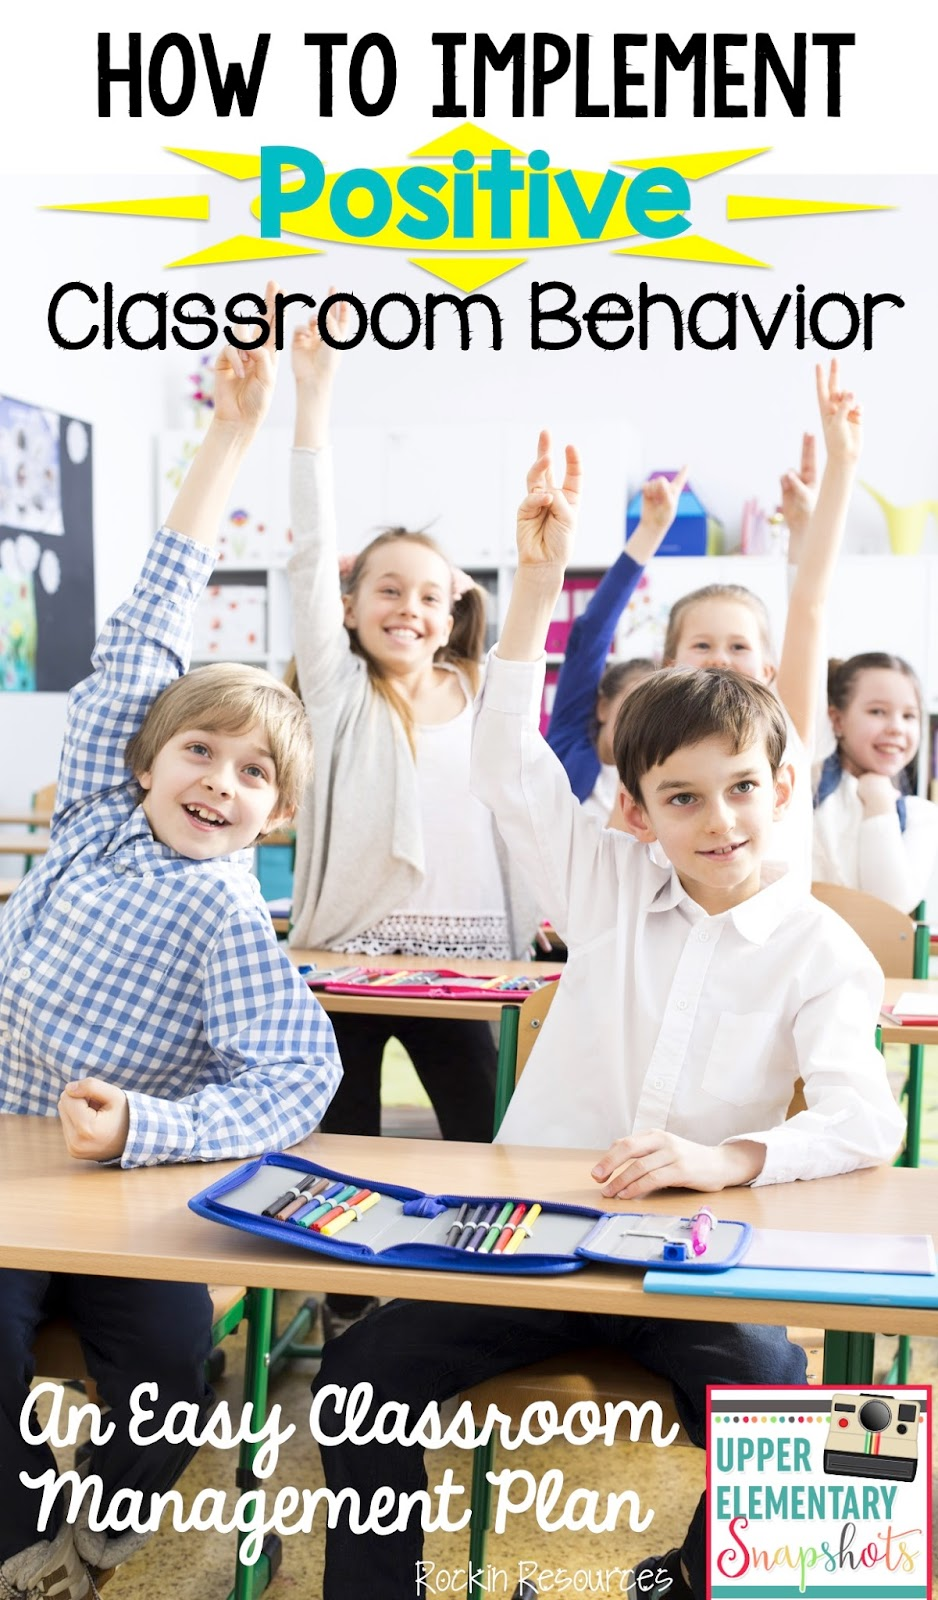 How Does Classroom Design And Organization Support Learning And Positive Behavior ~ Upper elementary snapshots how to implement positive